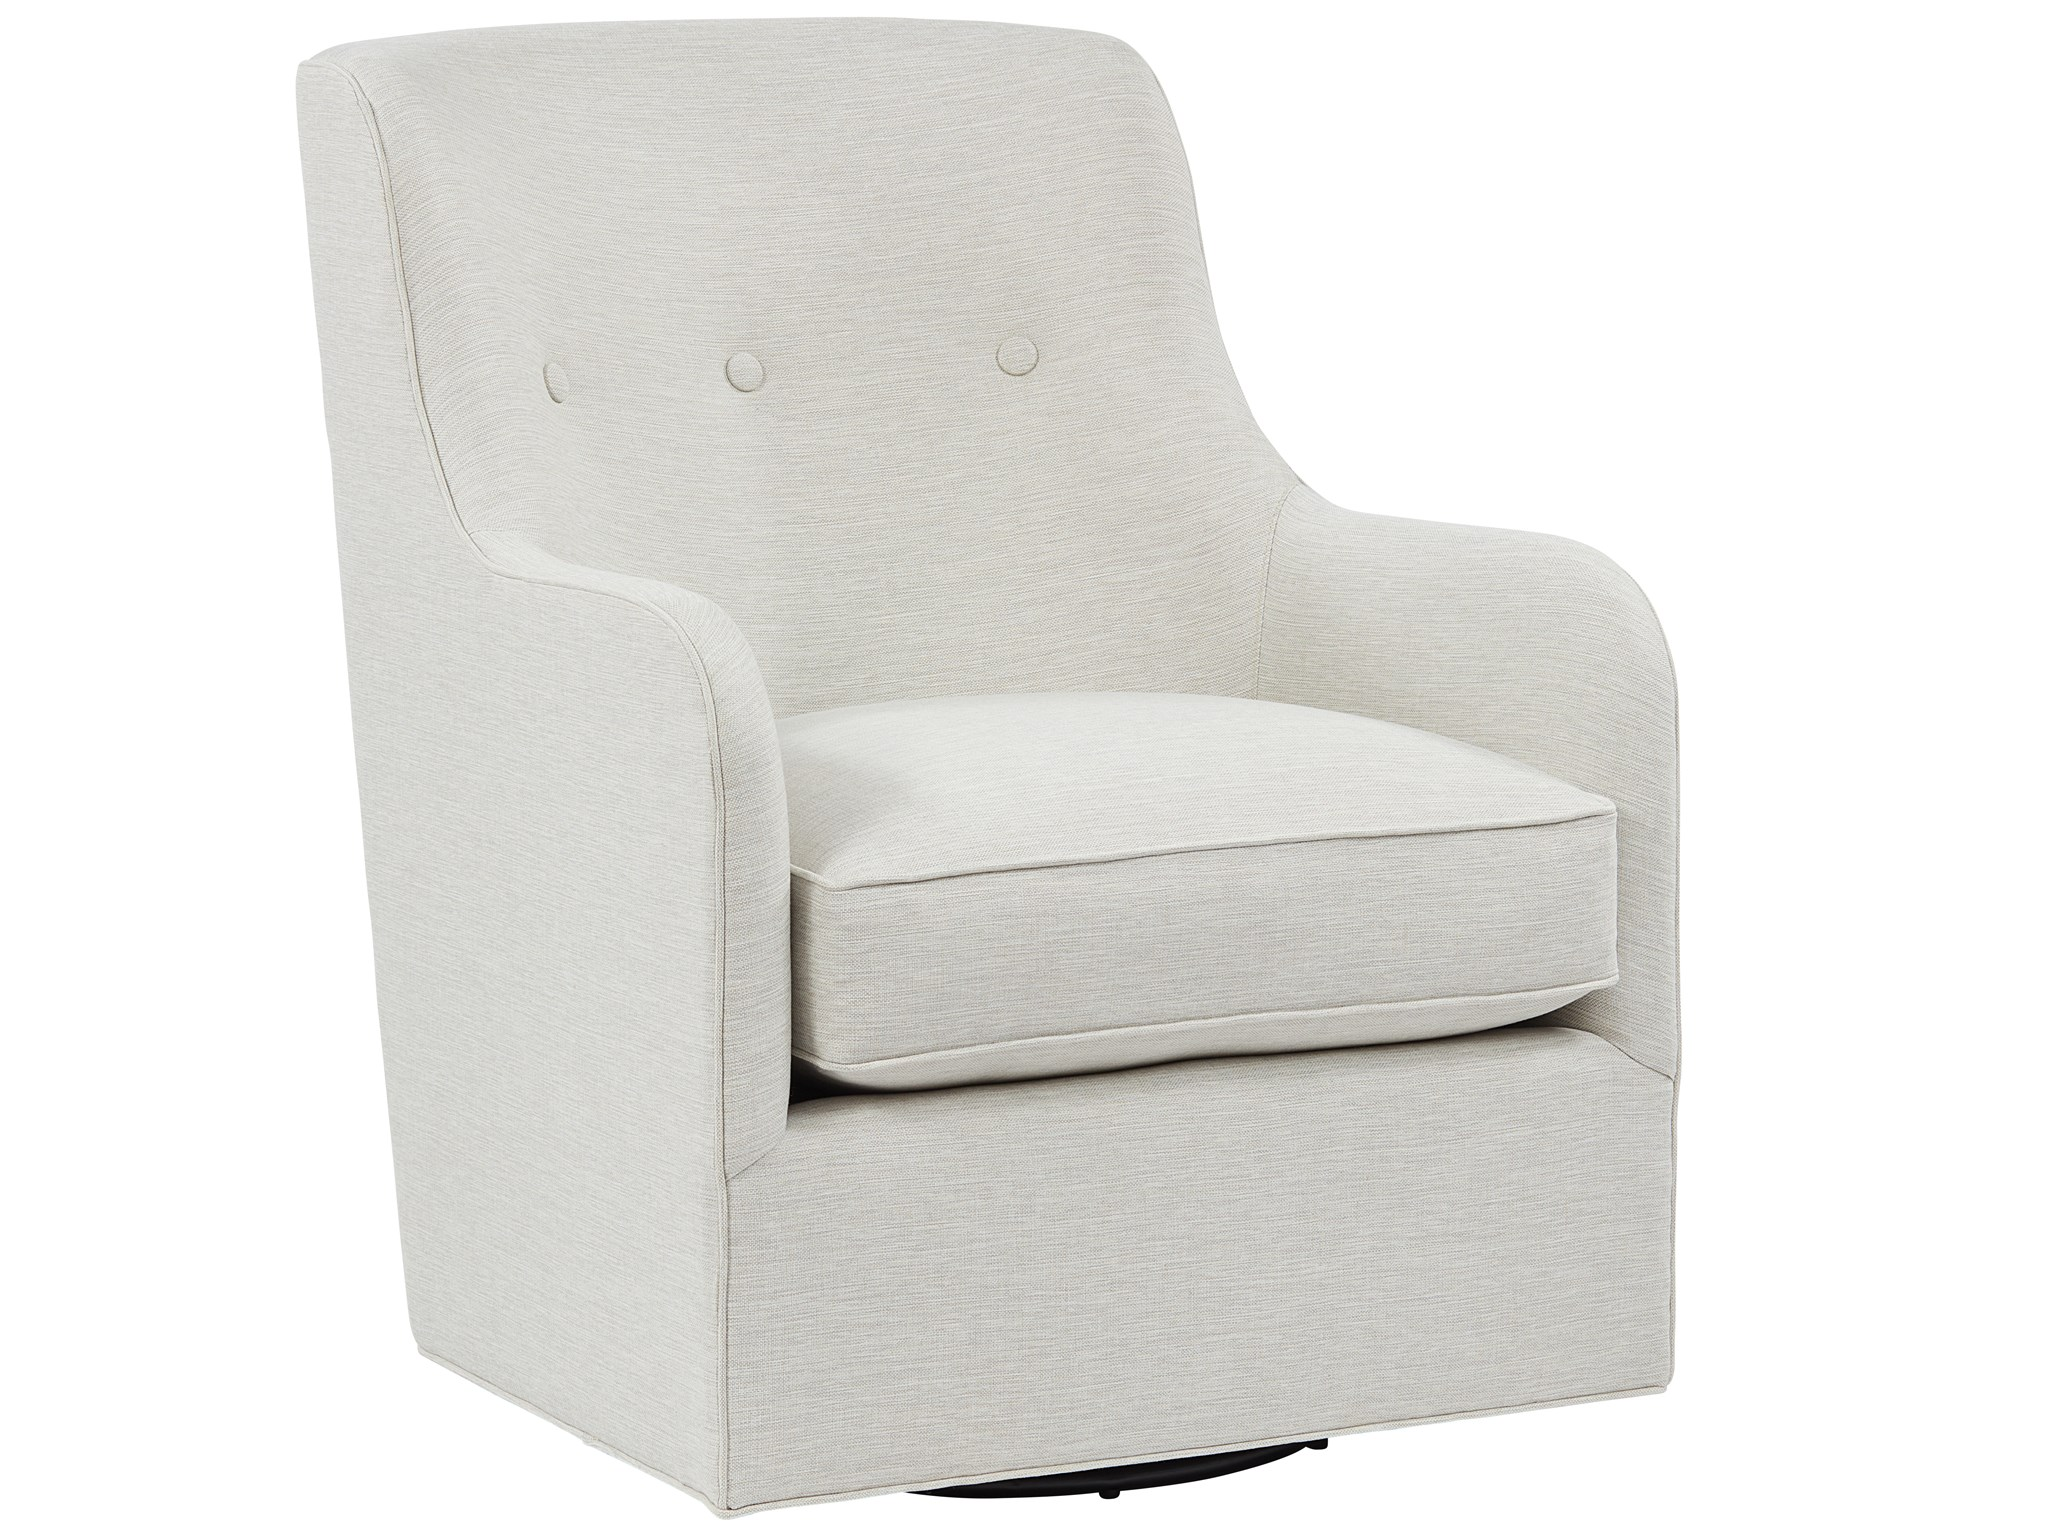 Mawyer Swivel Chair - Special Order